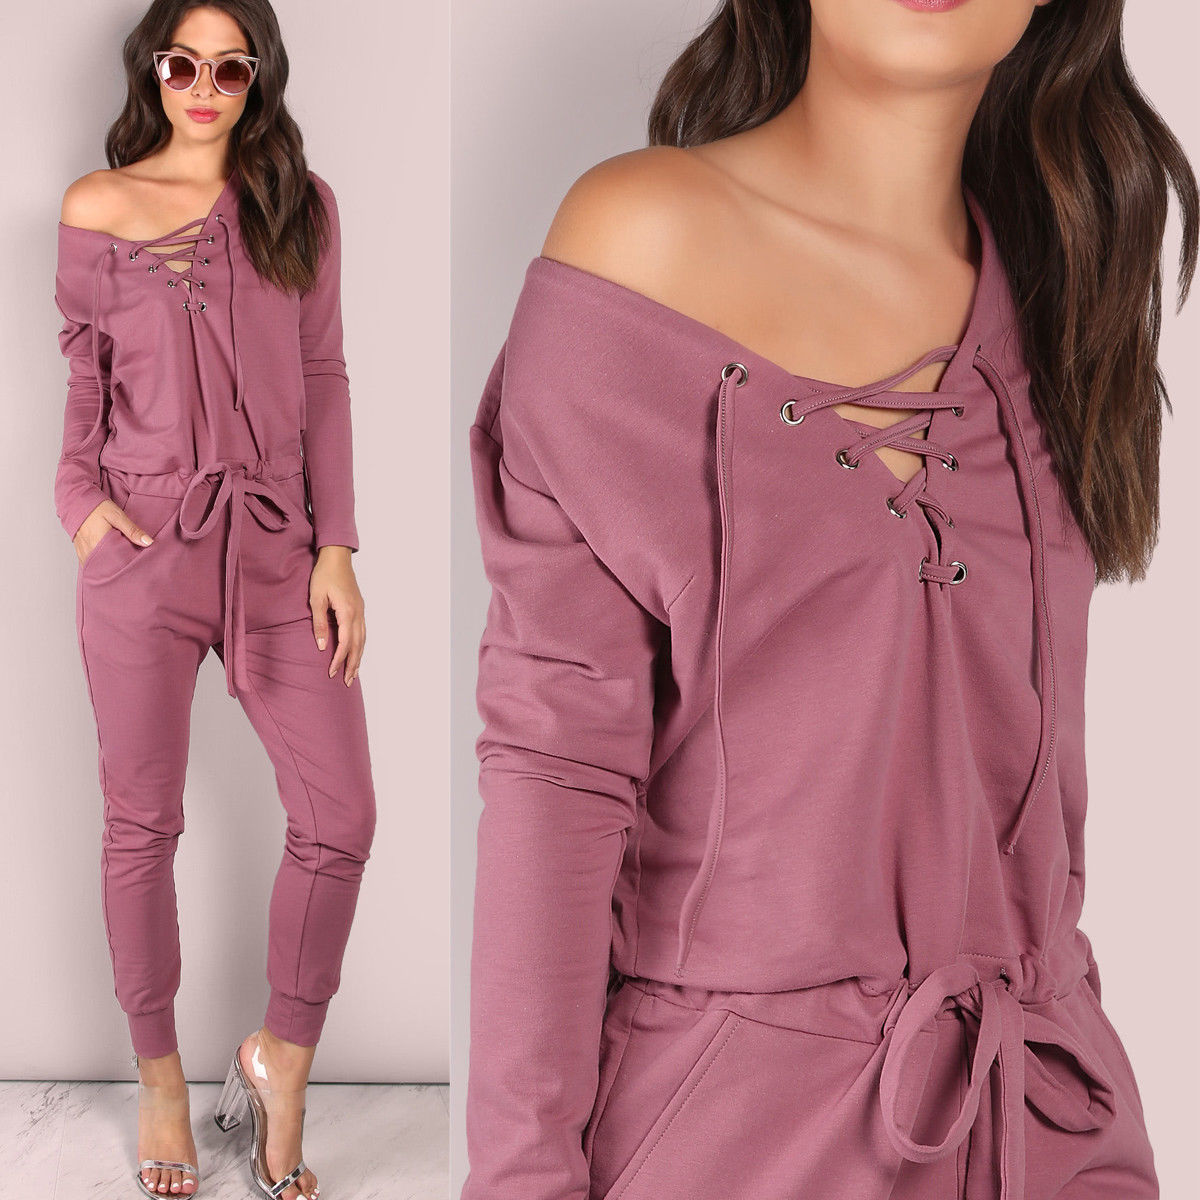 b20d3140b1c HIRIGIN Brand New Fashion Jumpsuits Girls Women Casual Long Sleeve Bodycon  Lace Up Romper Jumpsuit Club Bodysuit Long Pants-in Jumpsuits from Women s  ...